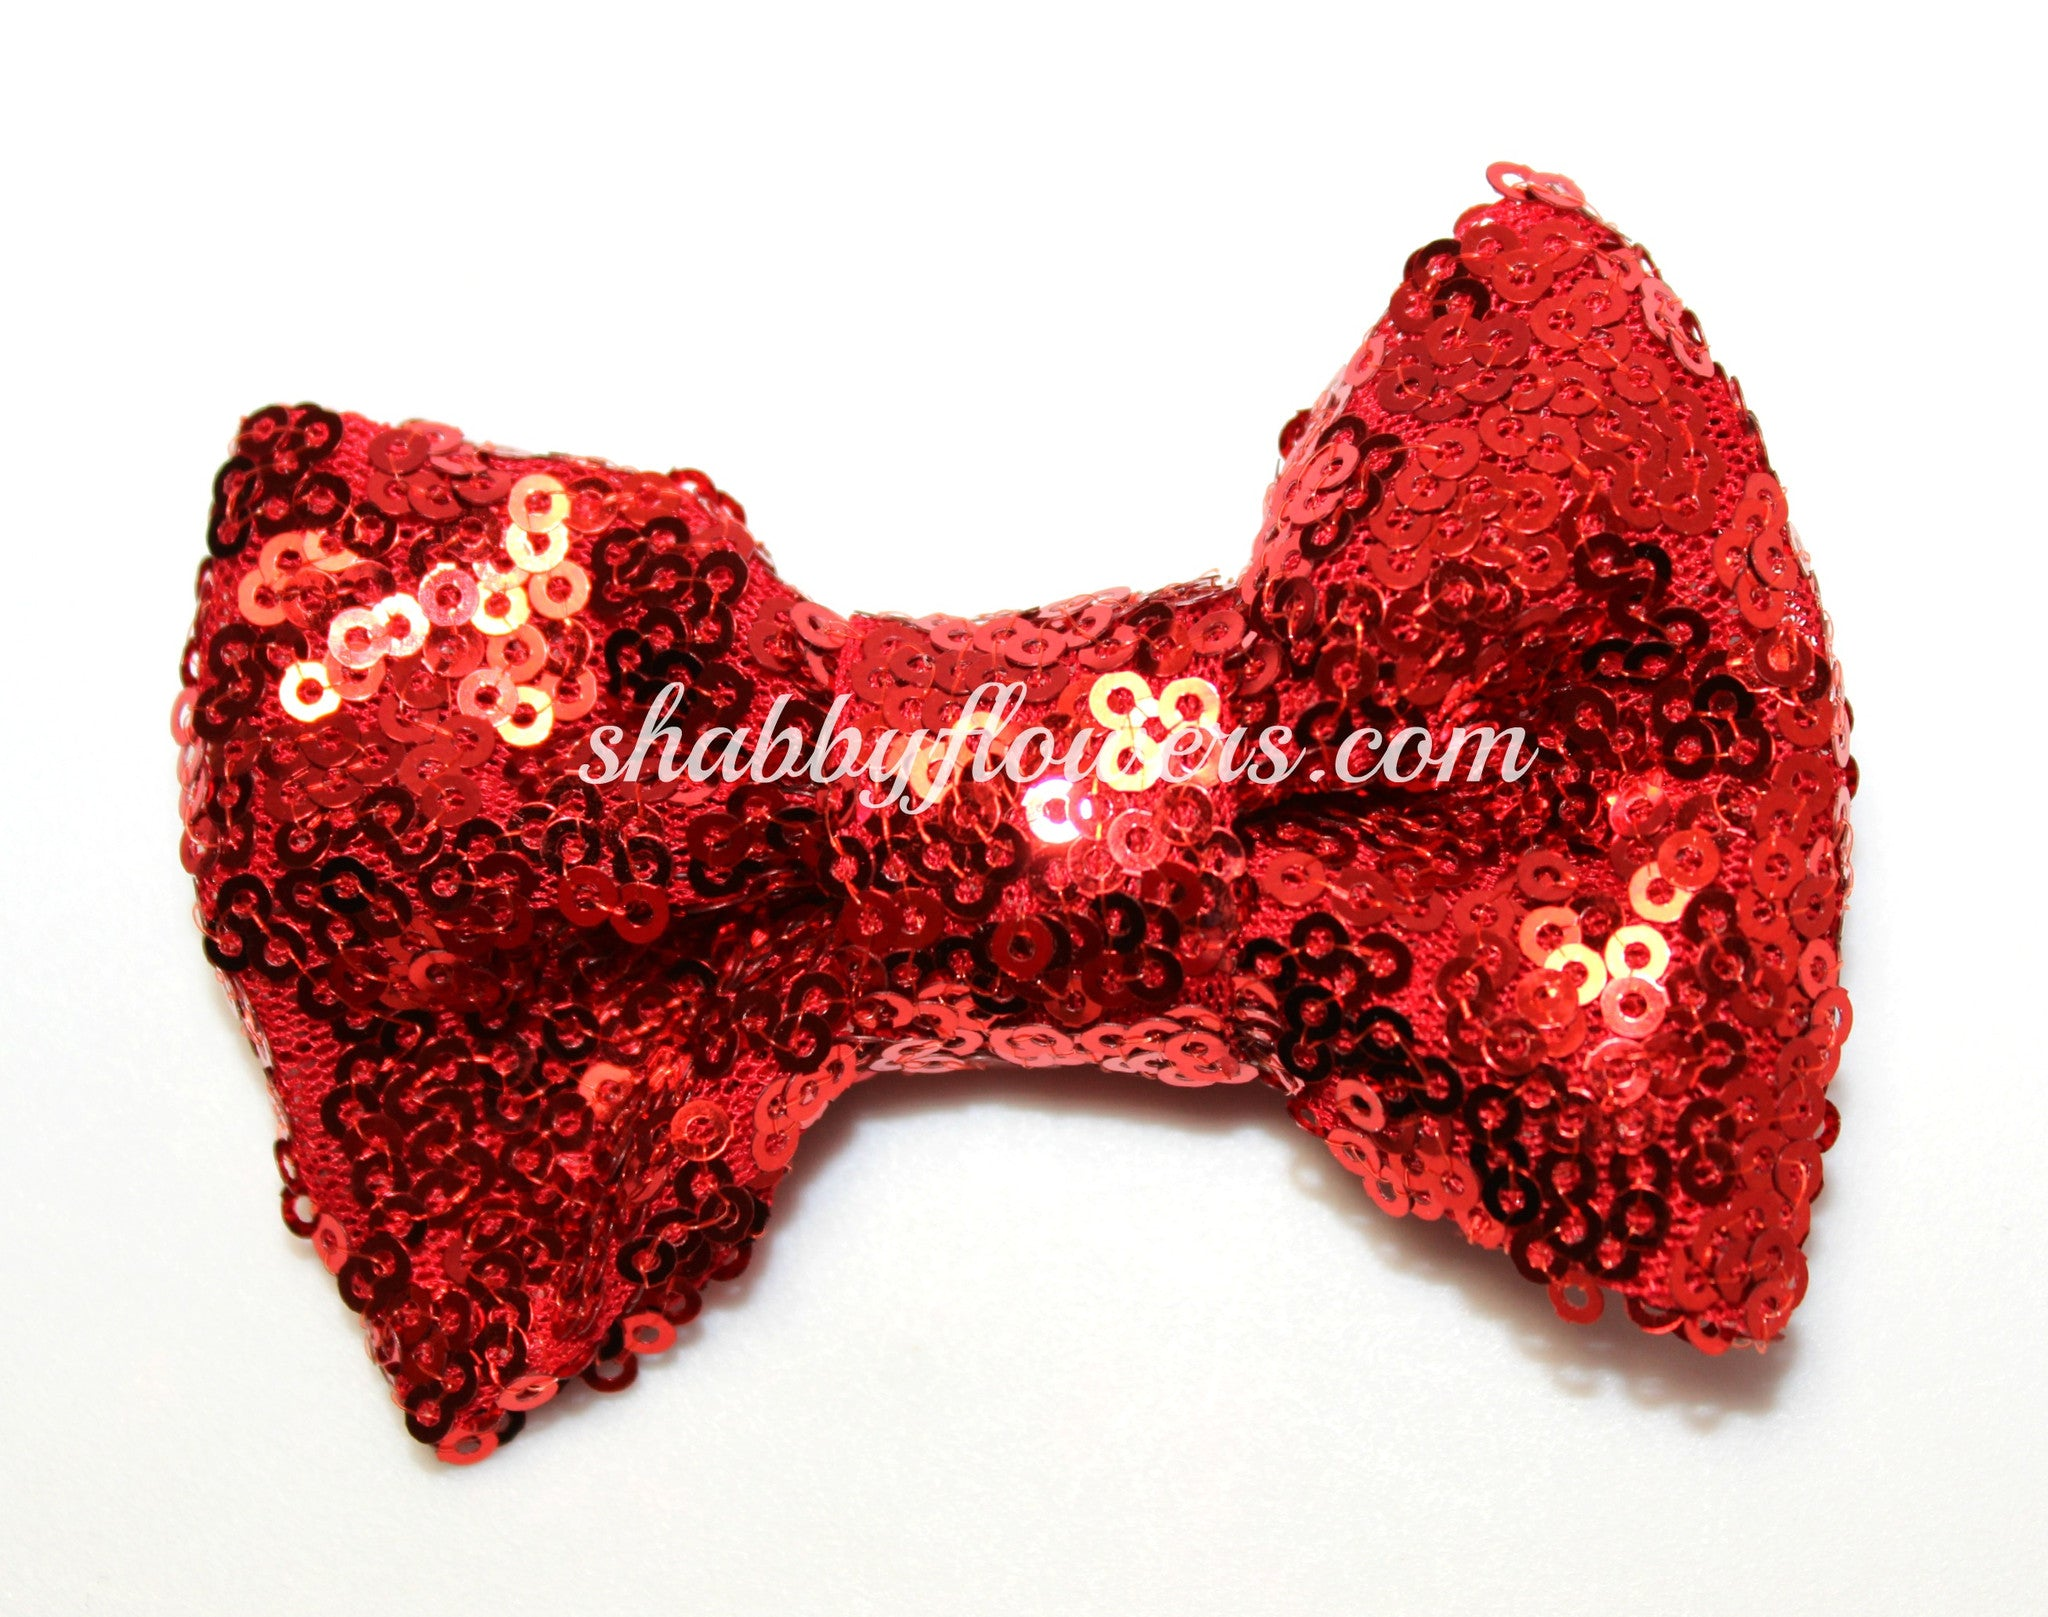 Large Sequin Bow - Red - shabbyflowers.com